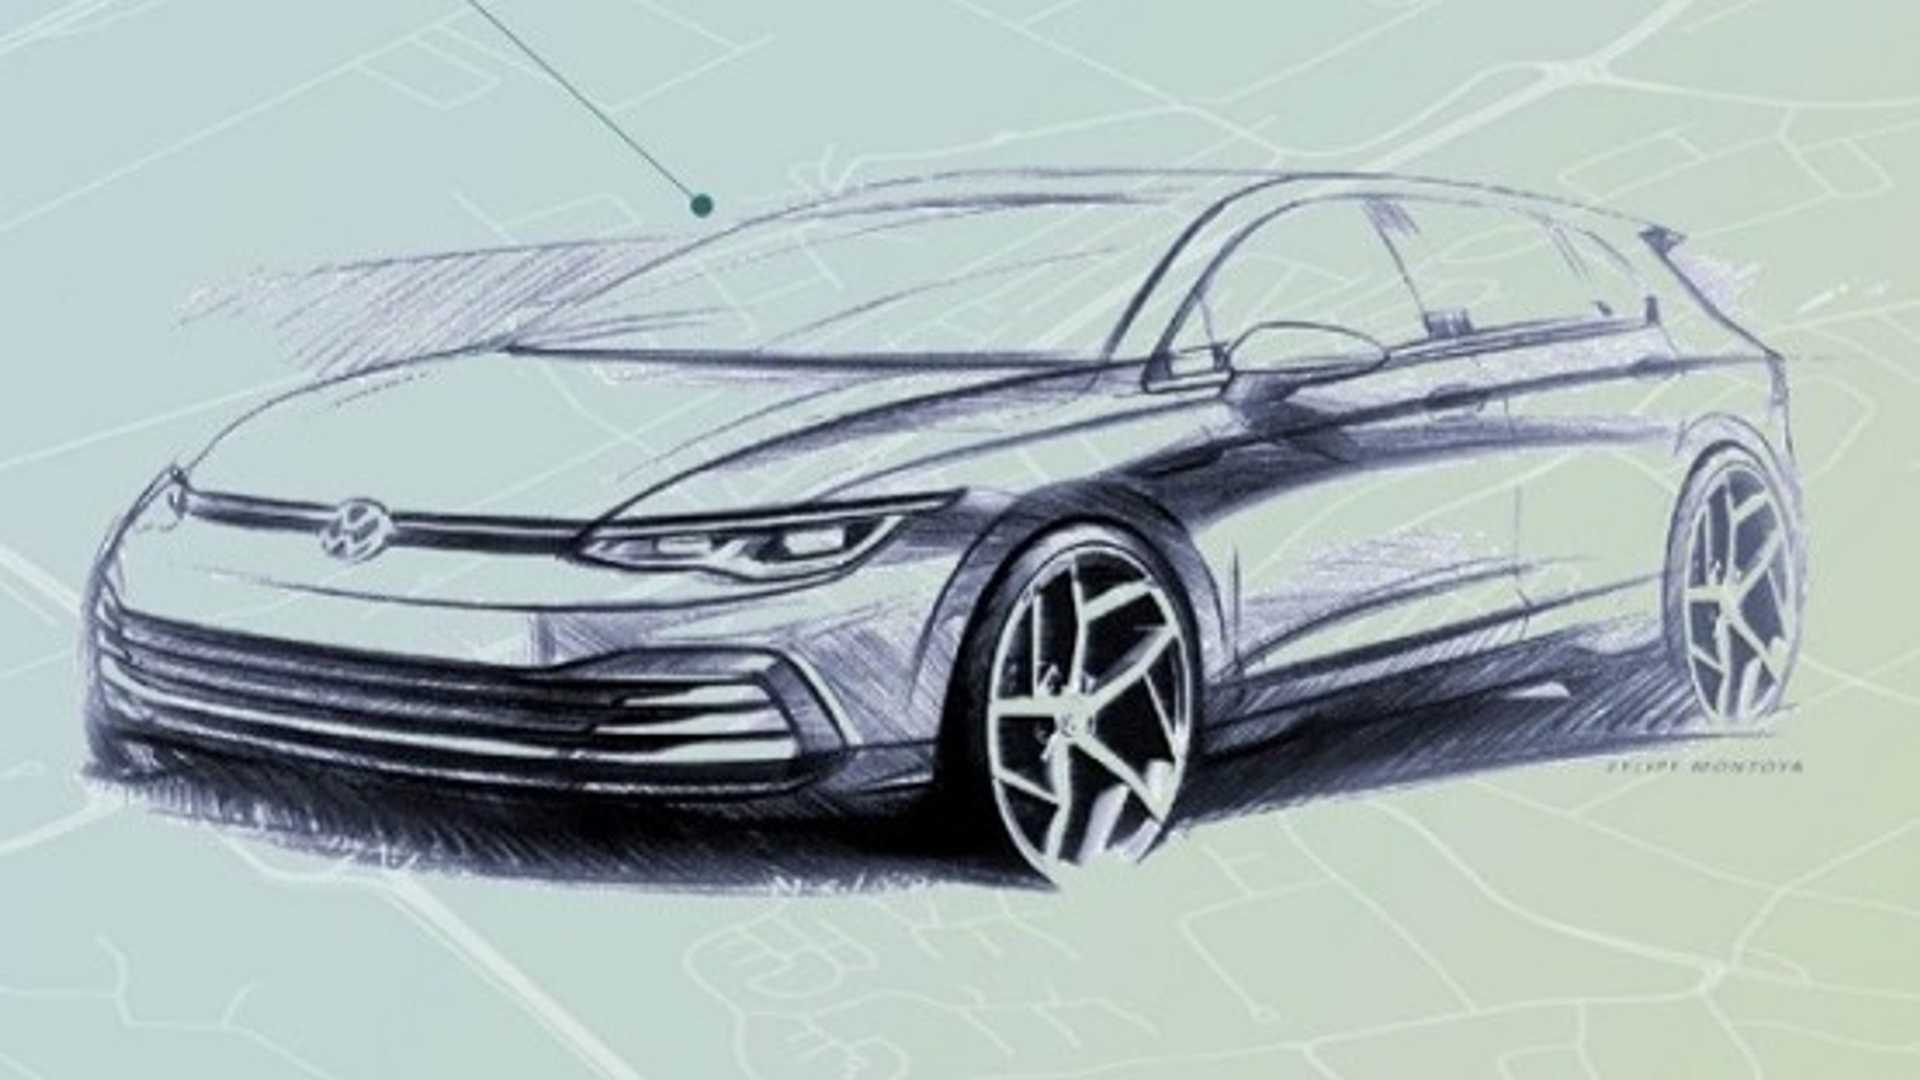 2020-vw-golf-teaser (1).jpg